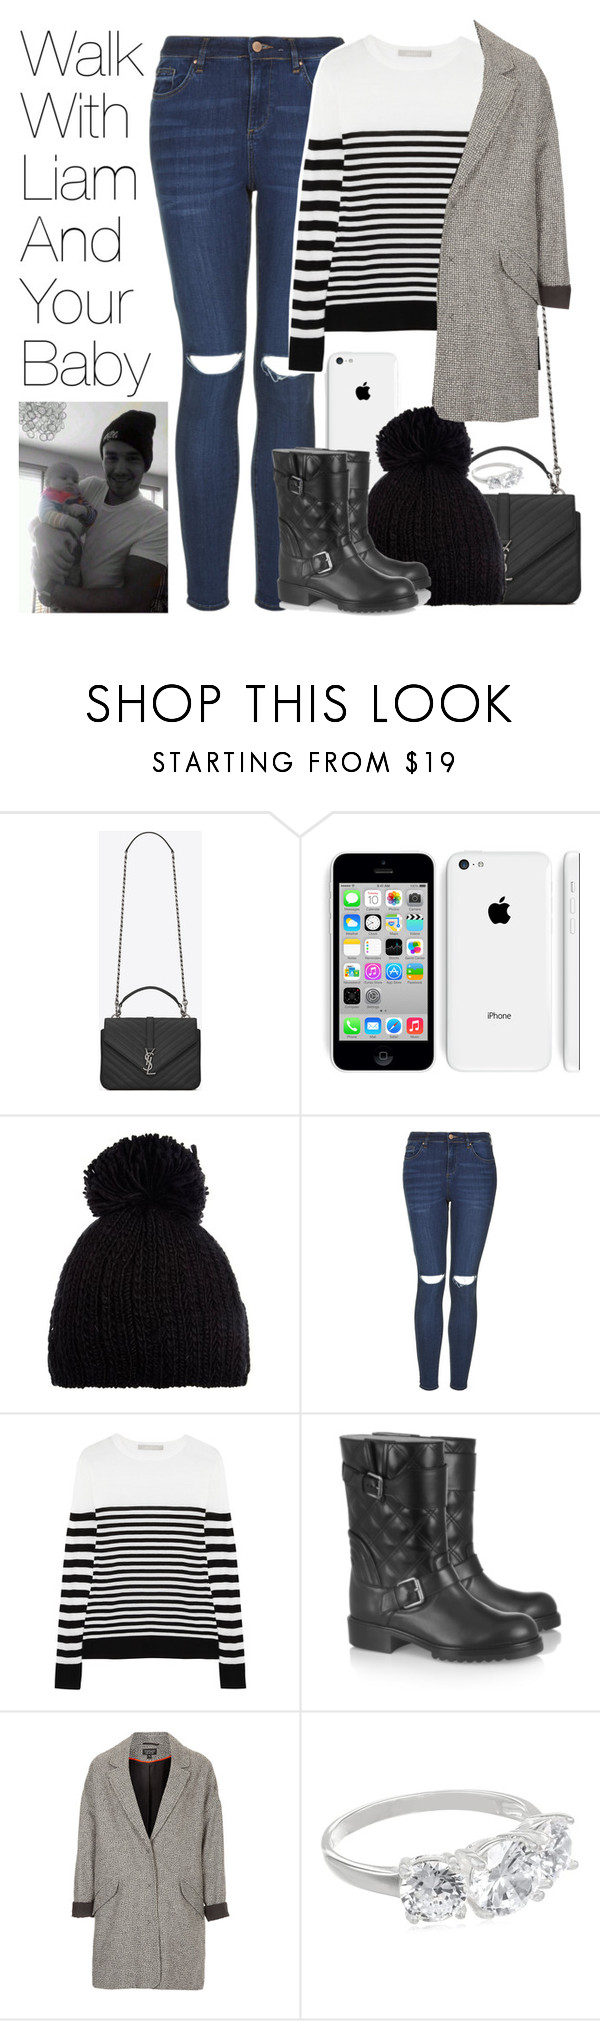 """""""Walk with Liam and Your Baby"""" by onedirectionimagineoutfits99 ❤ liked on Polyvore featuring Yves Saint Laurent, Barts, Topshop, Jason Wu and Marc Jacobs"""